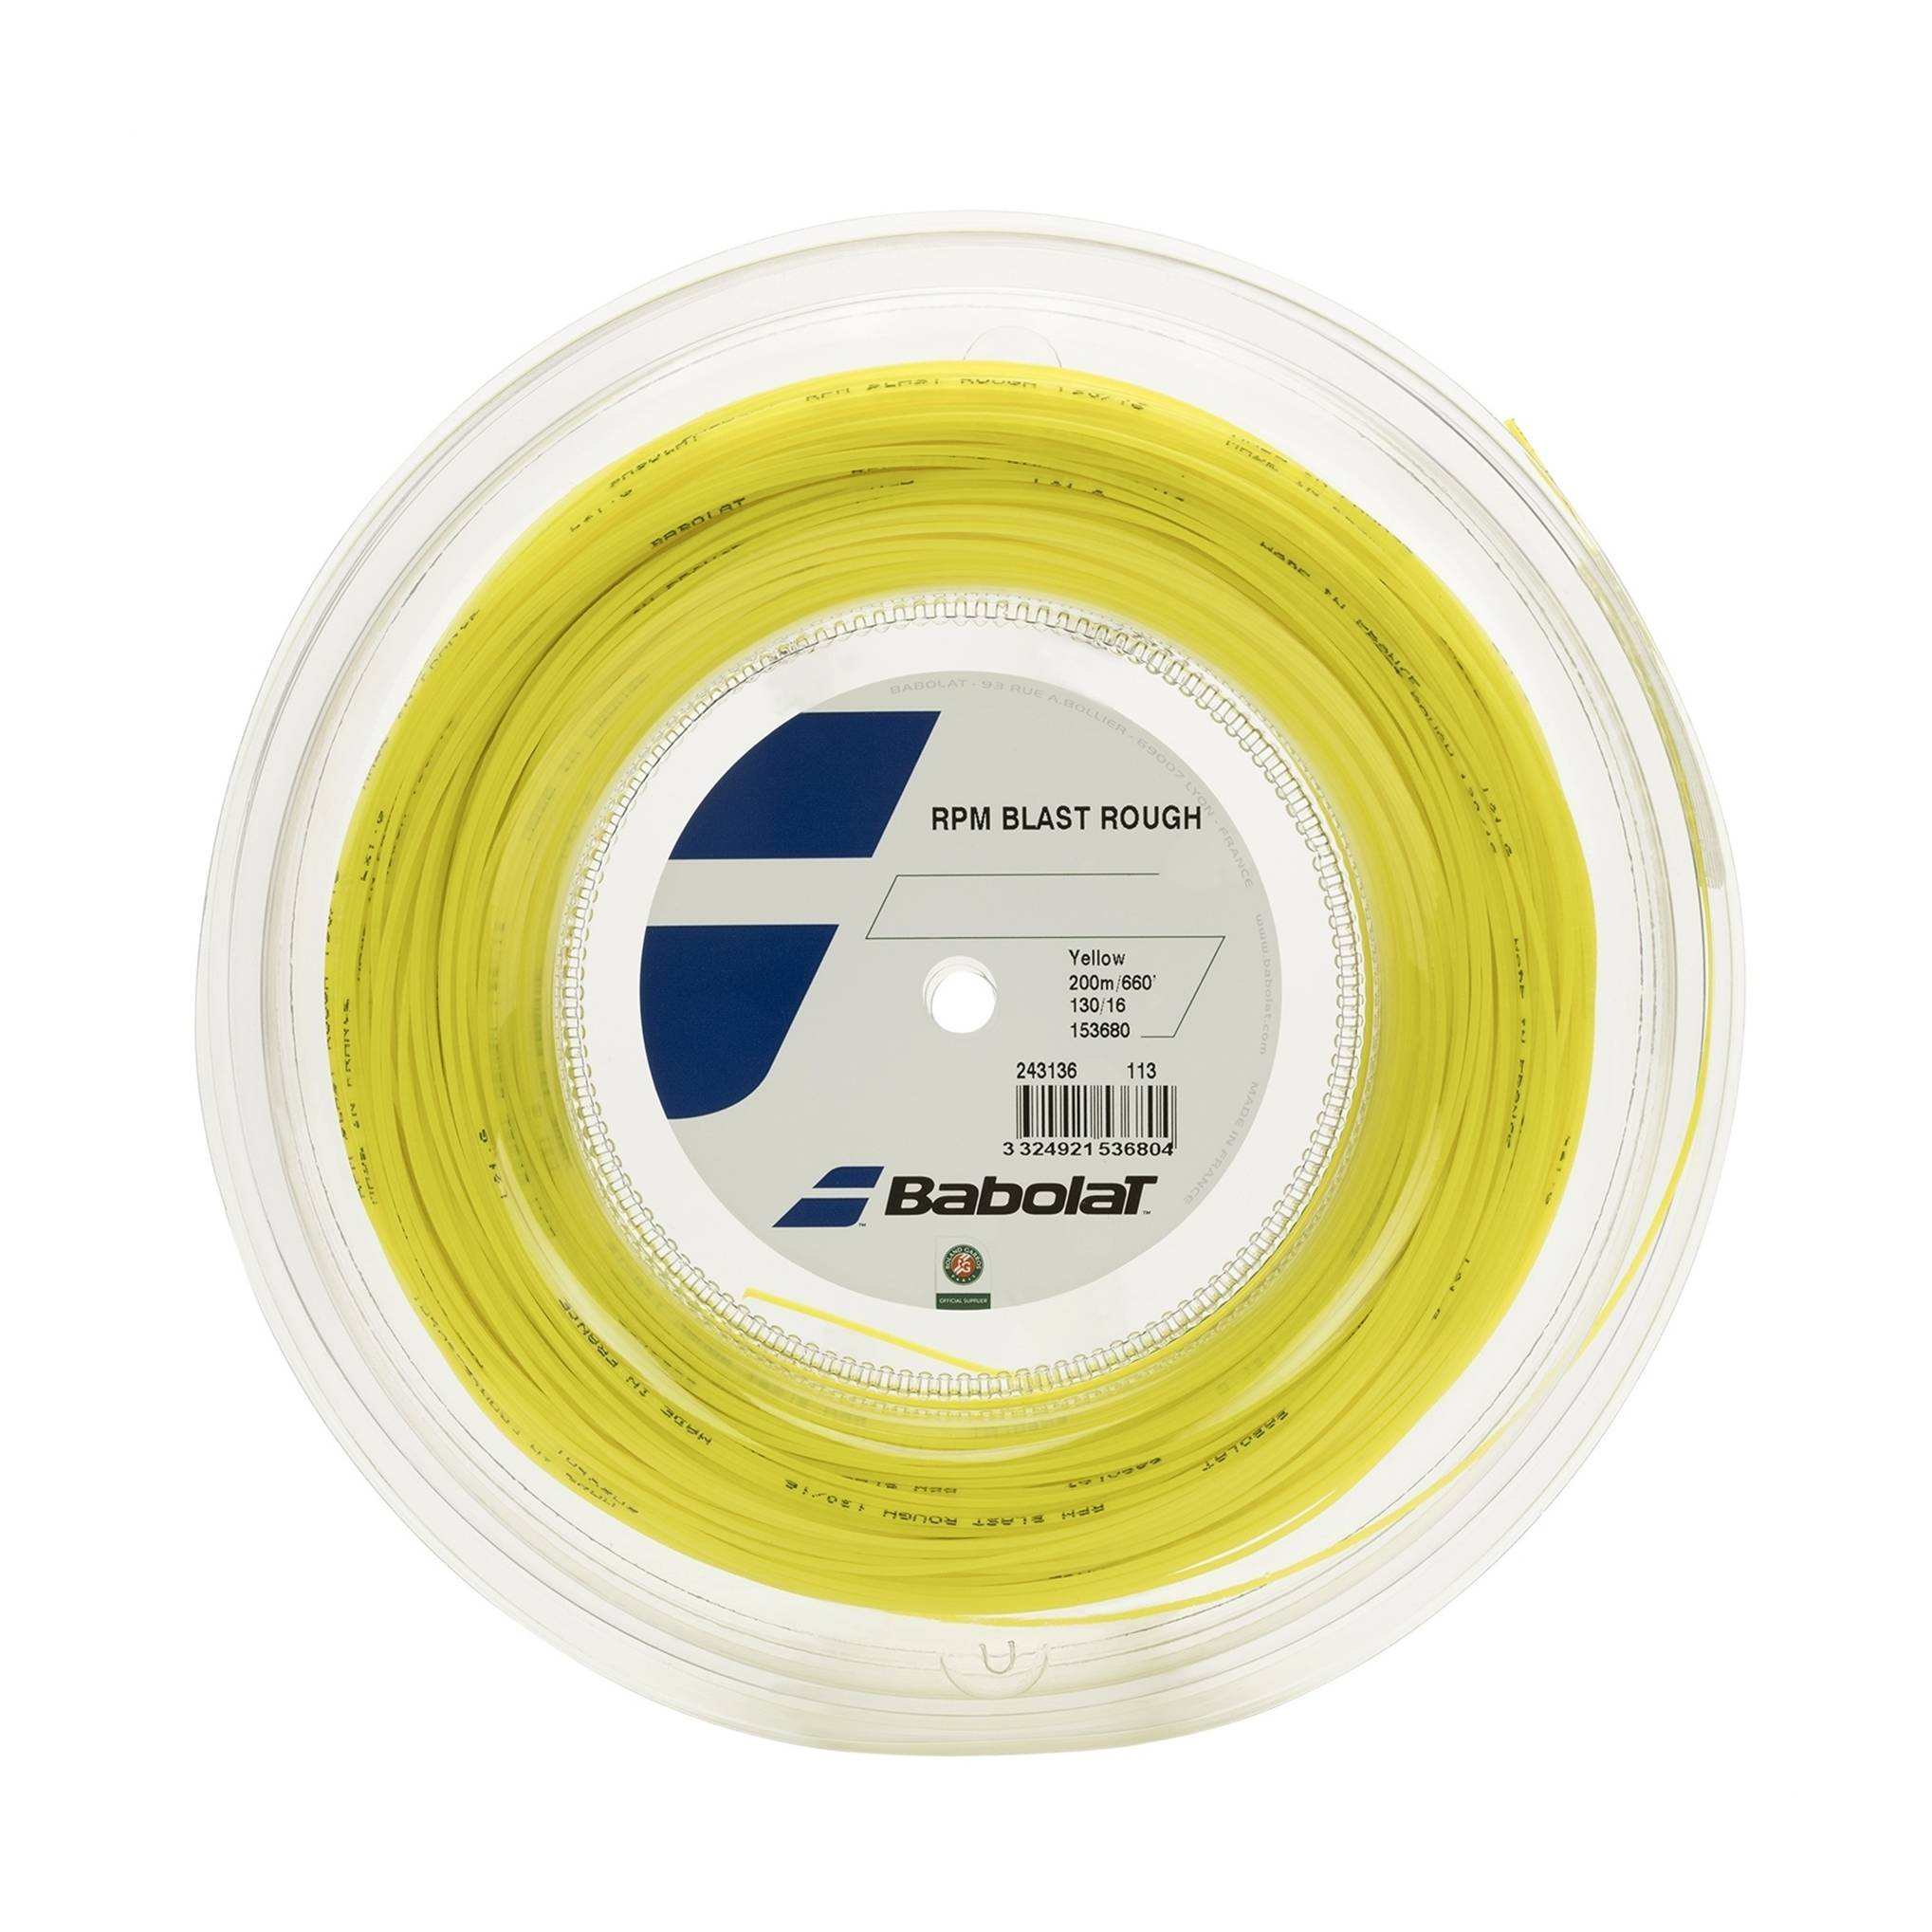 Babolat RPM Blast Rough Yellow 200 m 1,35